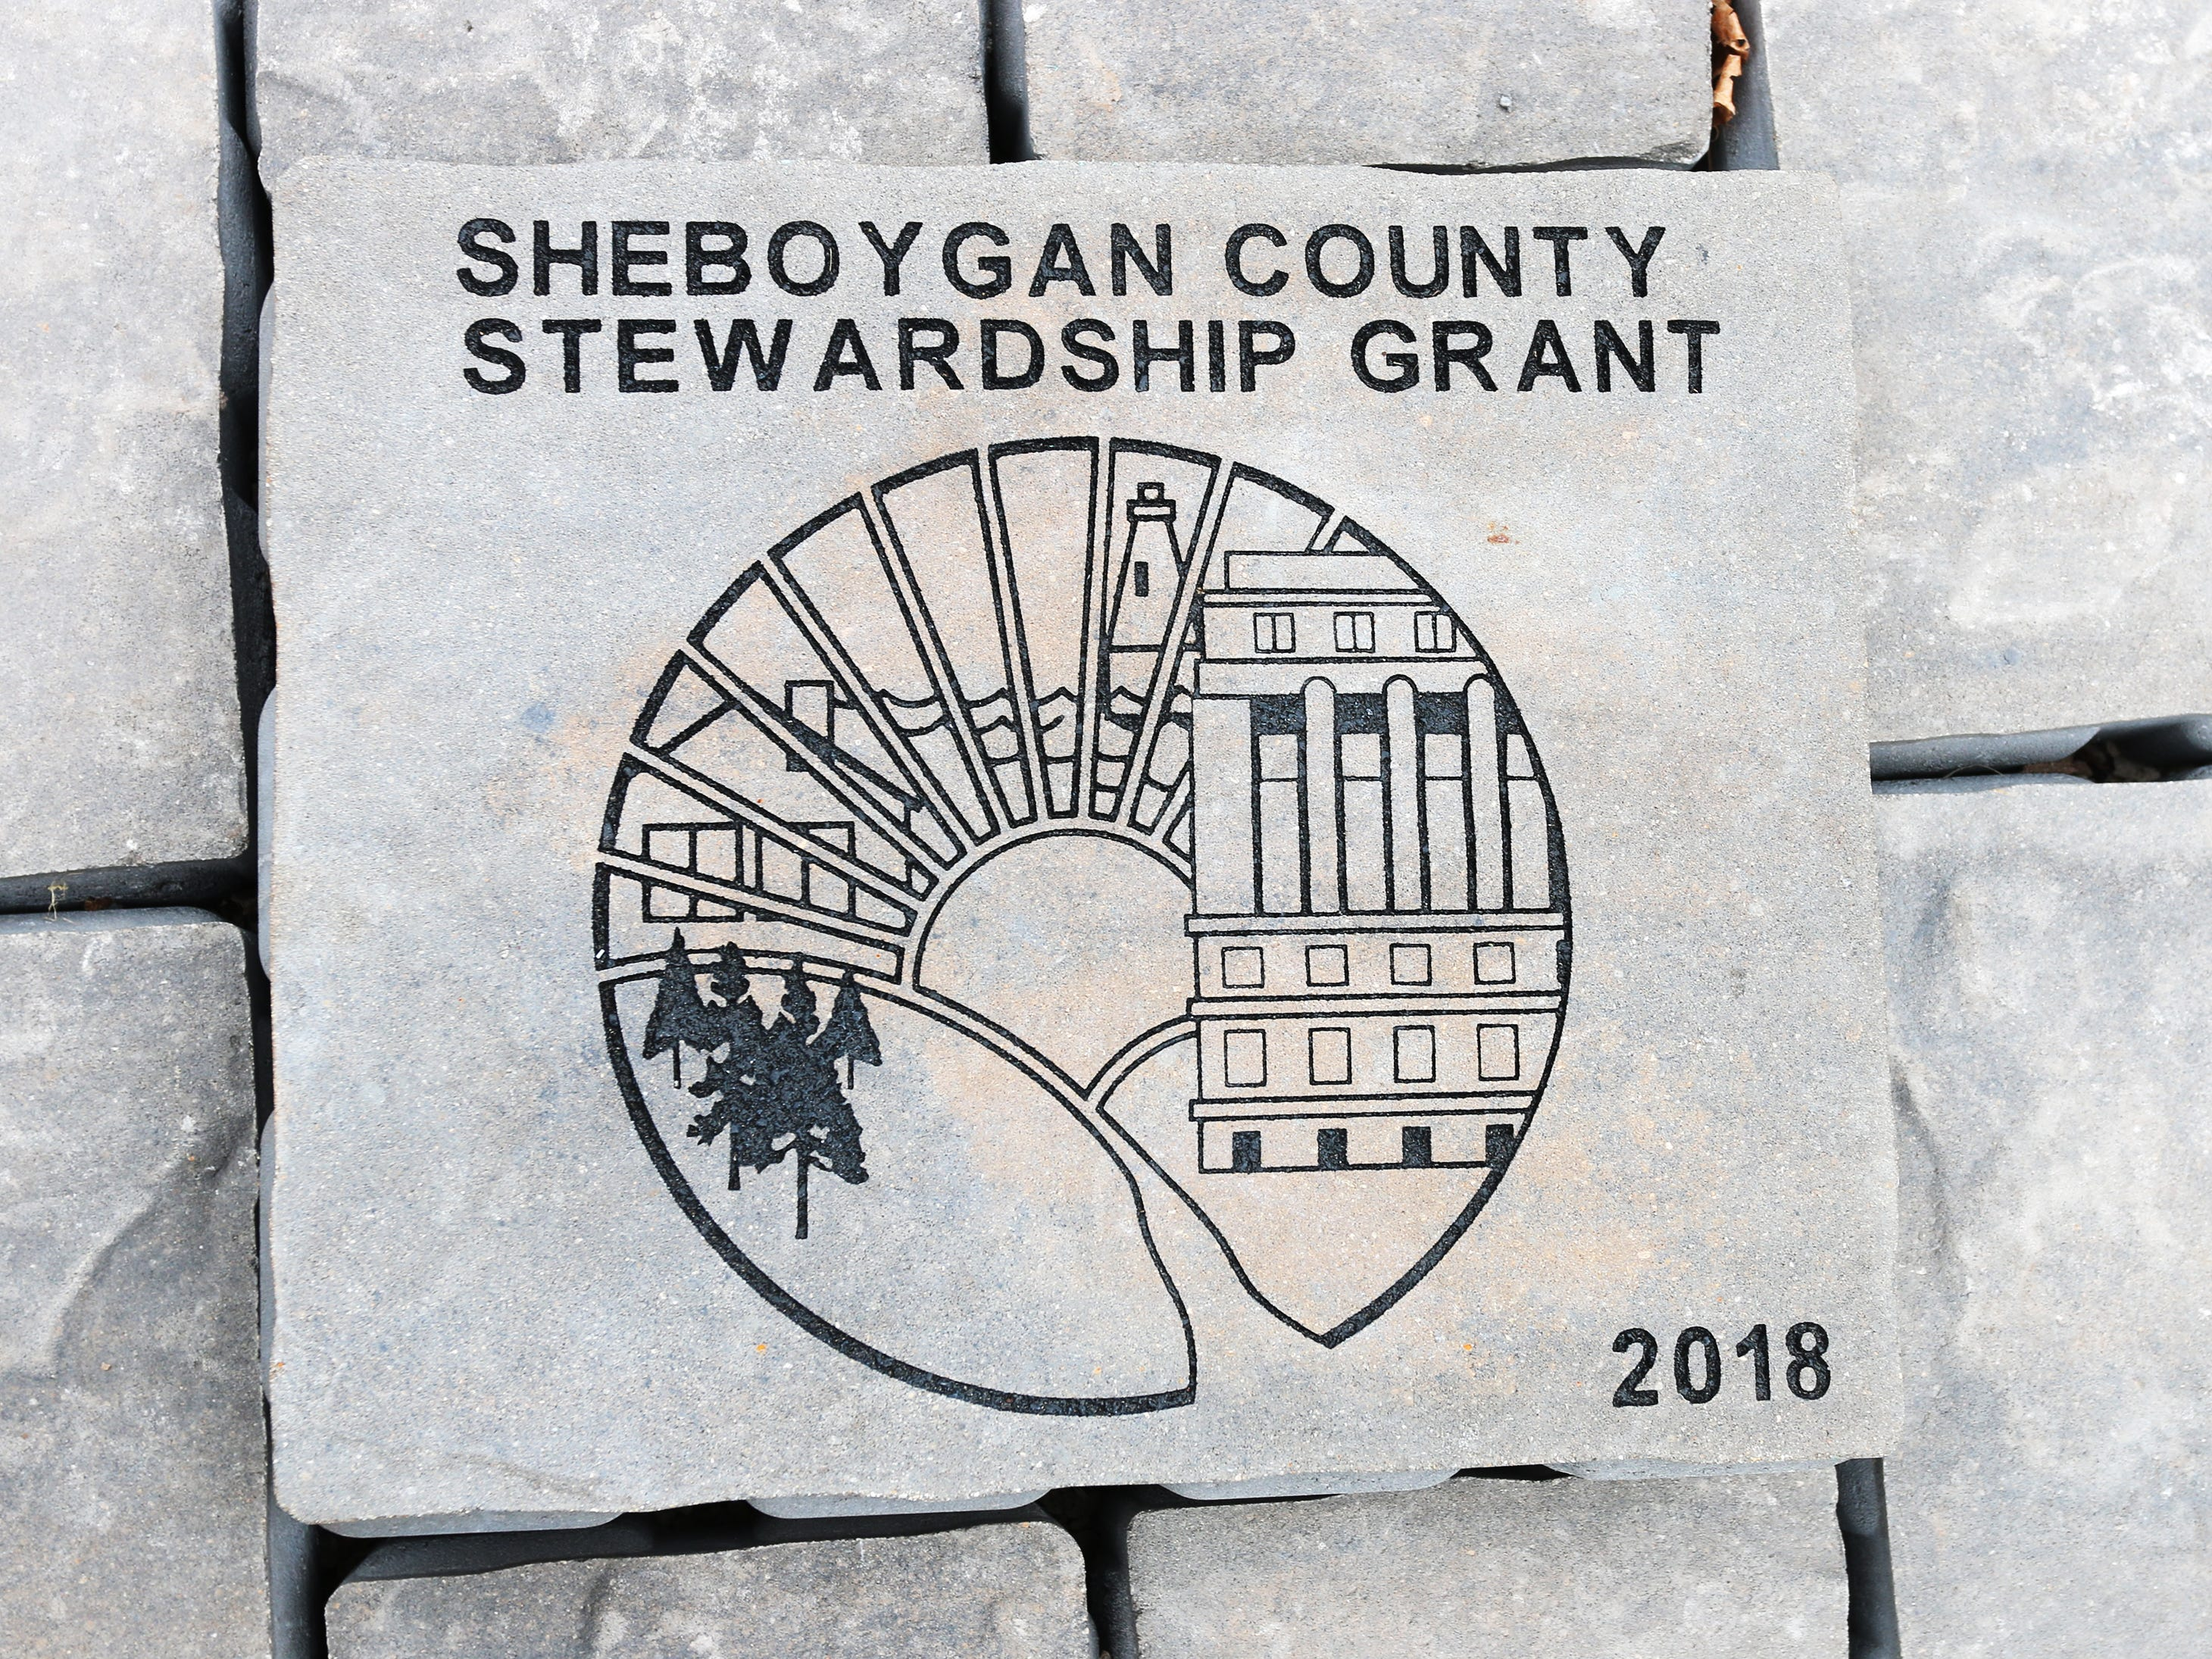 An engraved paver brick before installation during renovations at Sheboygan Peace Park, Friday, November 16, 2018, in Sheboygan, Wis. For more information go to: https://sheboyganpeacepark.org/